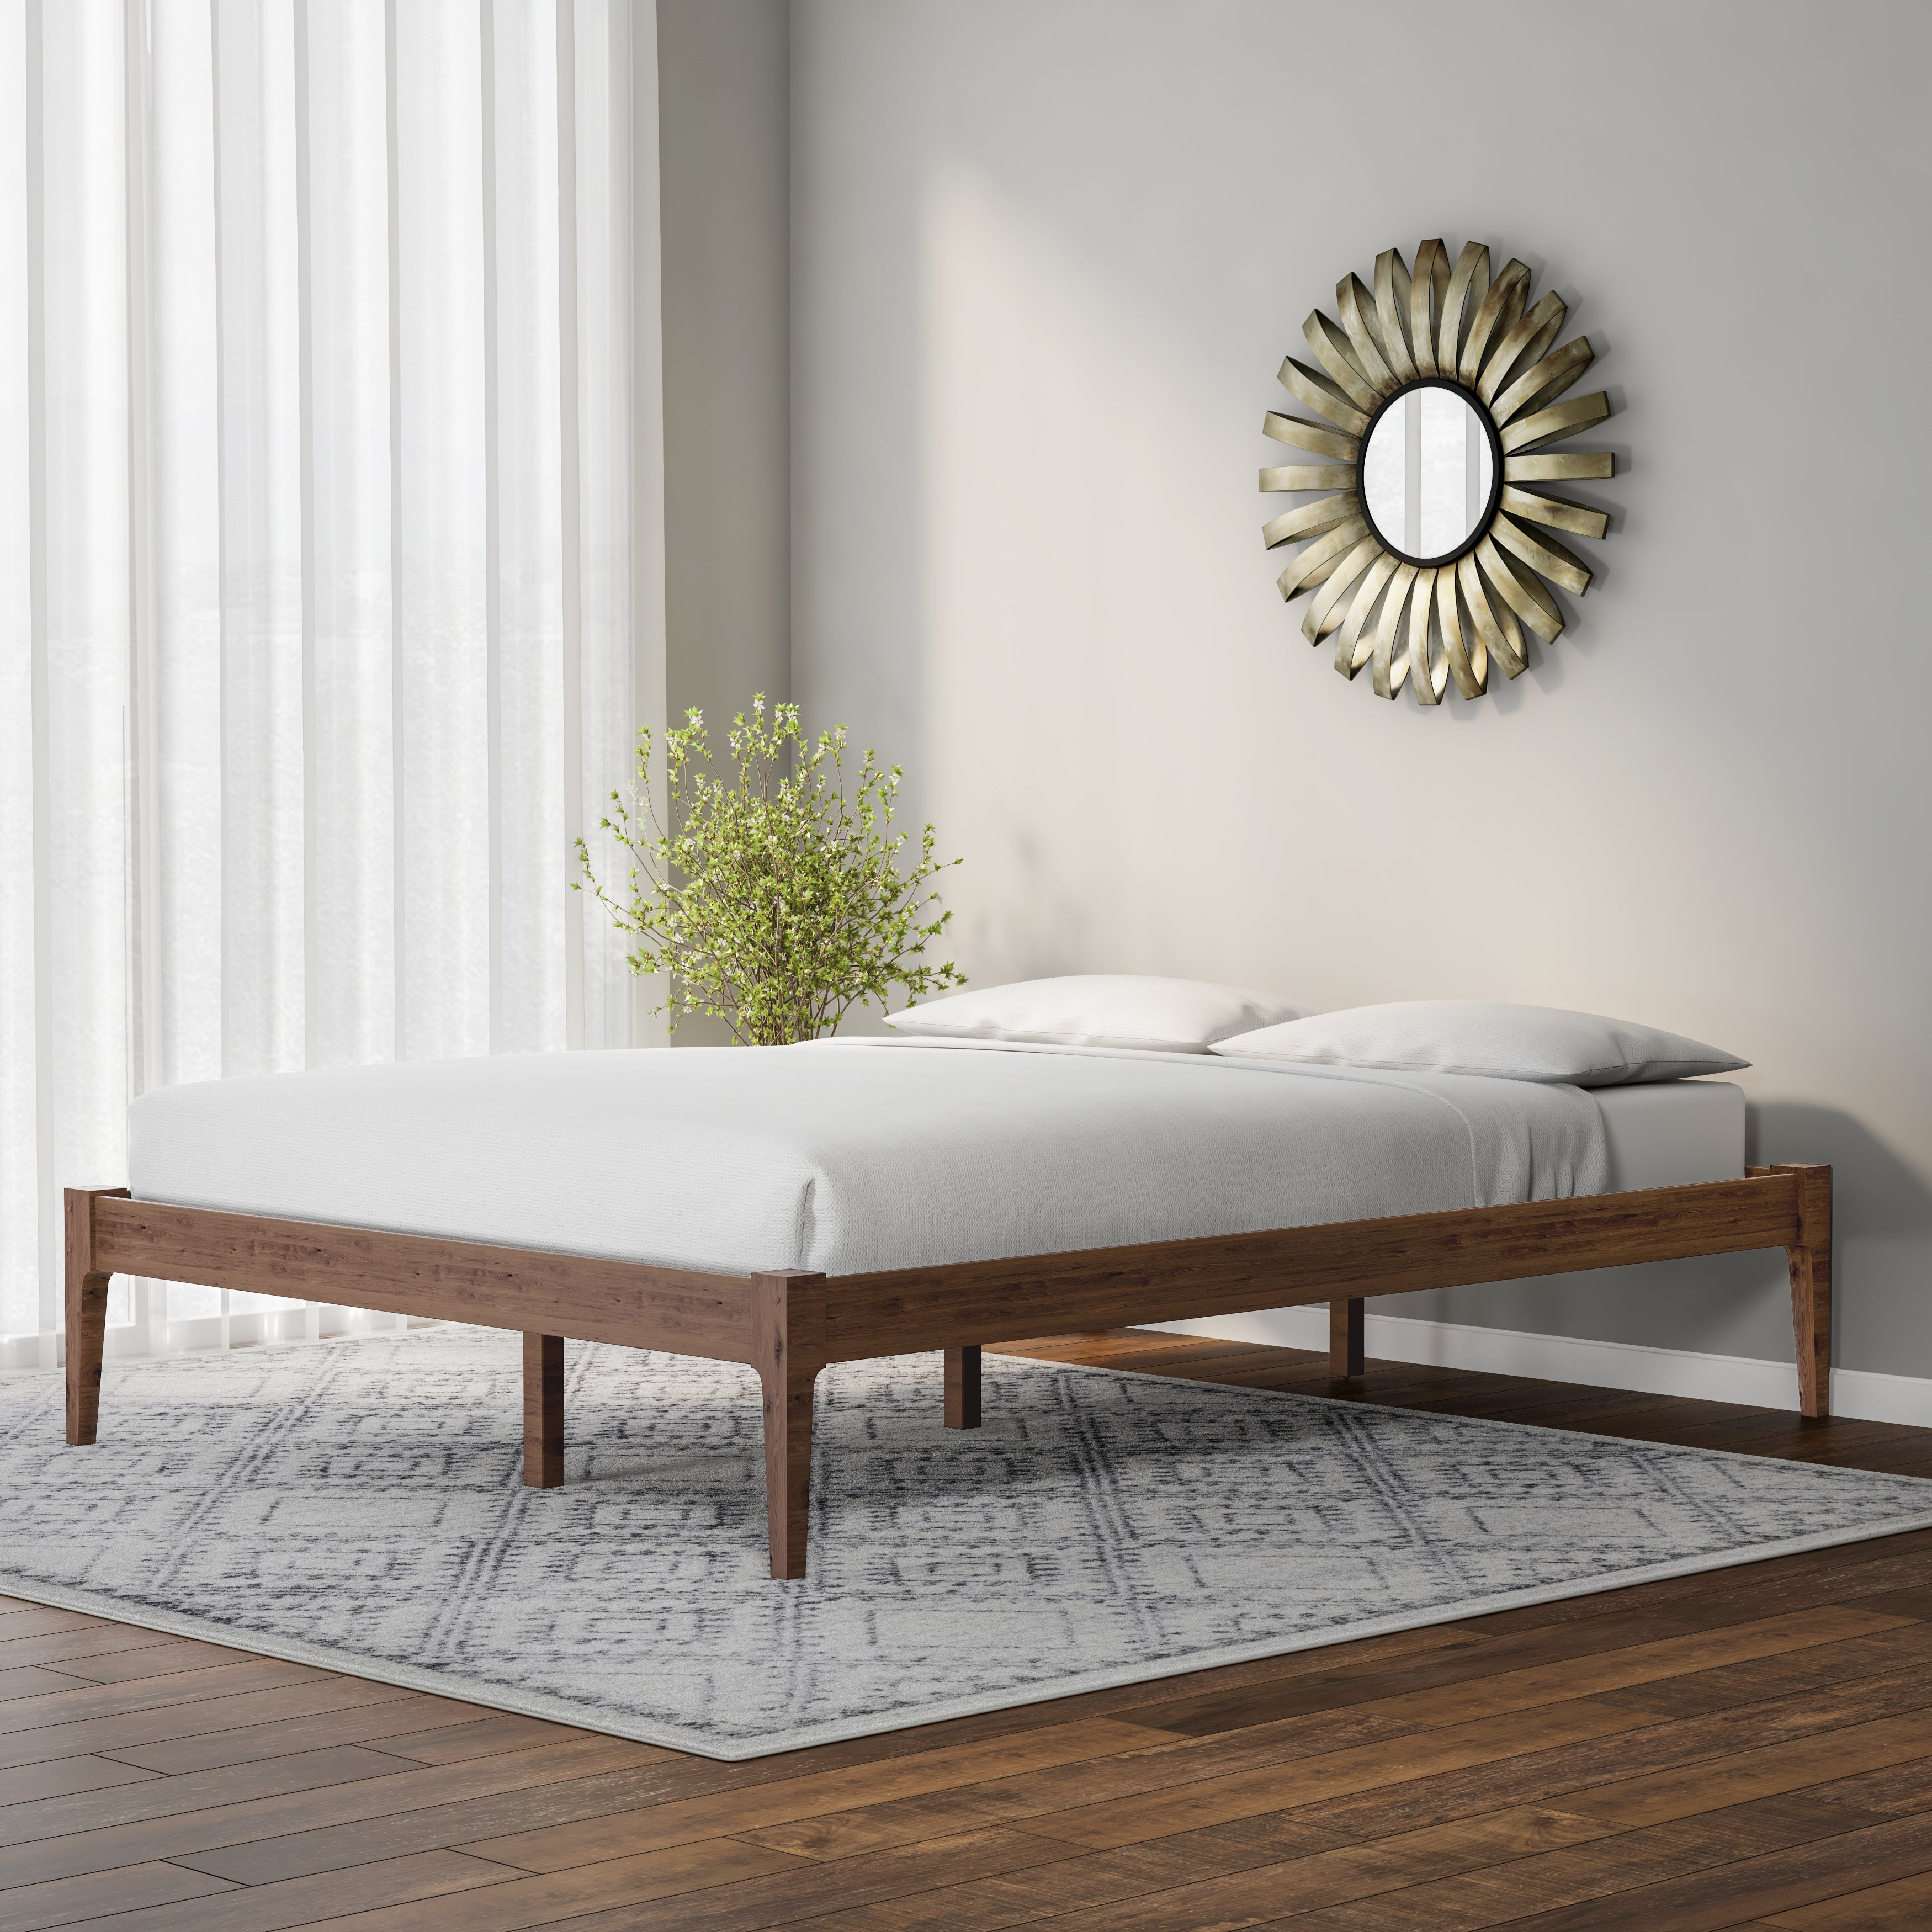 Shop Baxton Studio Mid Century Modern Solid Wood Platform Bed